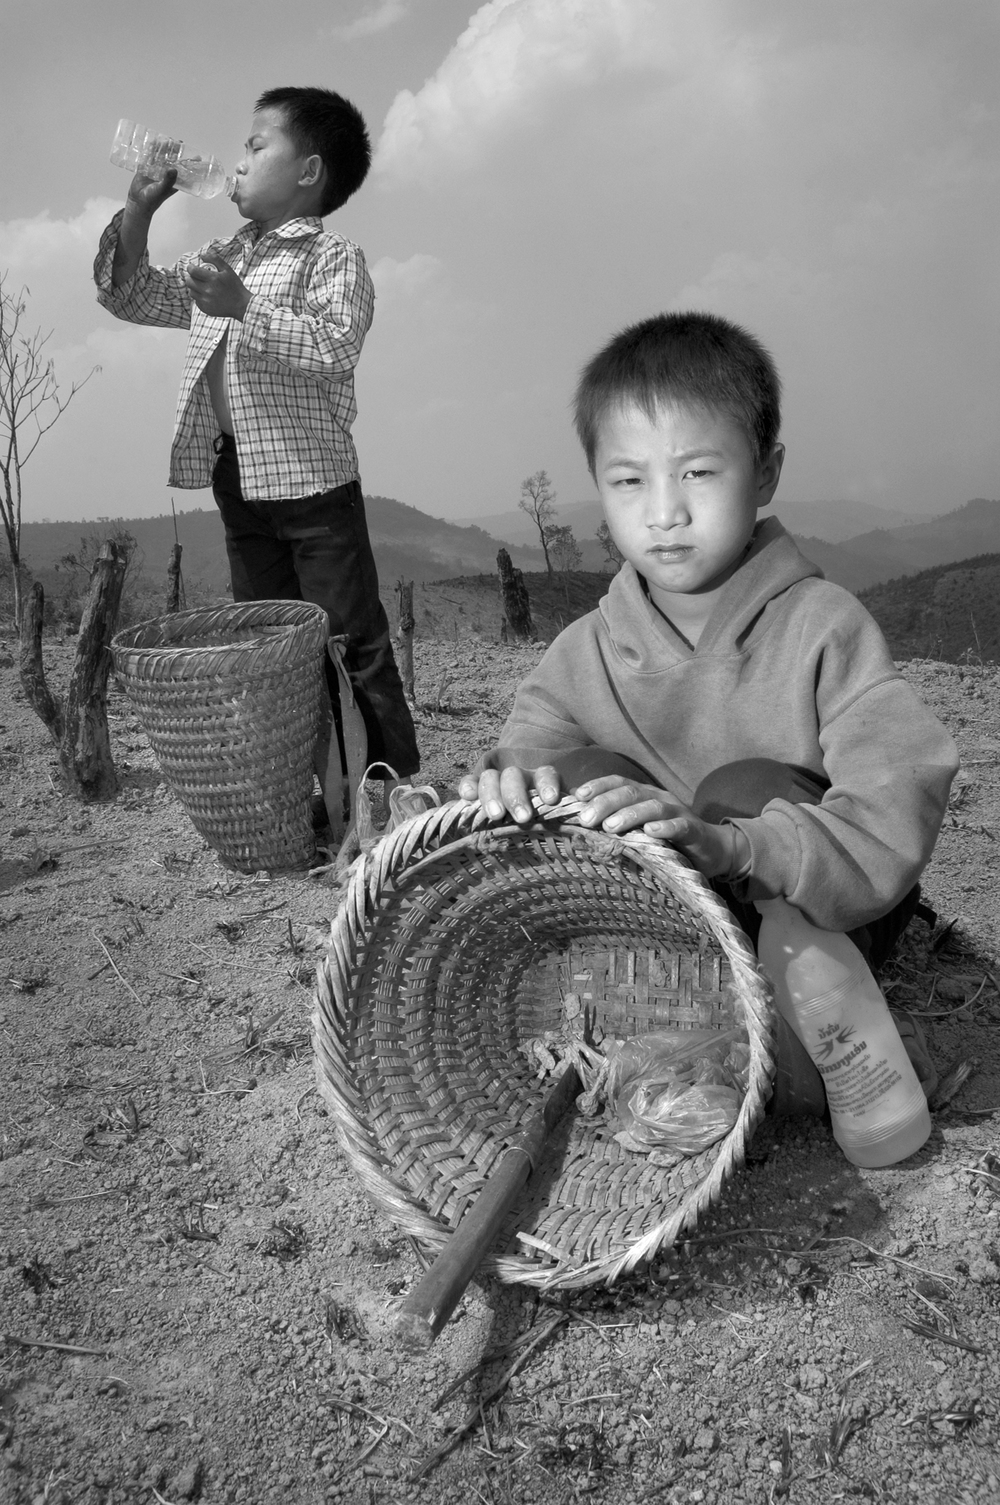 Teng, an 8-year-old Hmong boy, takes a break from scavenging bomb scraps with a friend, in the ashes of a burned field in the middle of Xieng Khouang province, Laos.